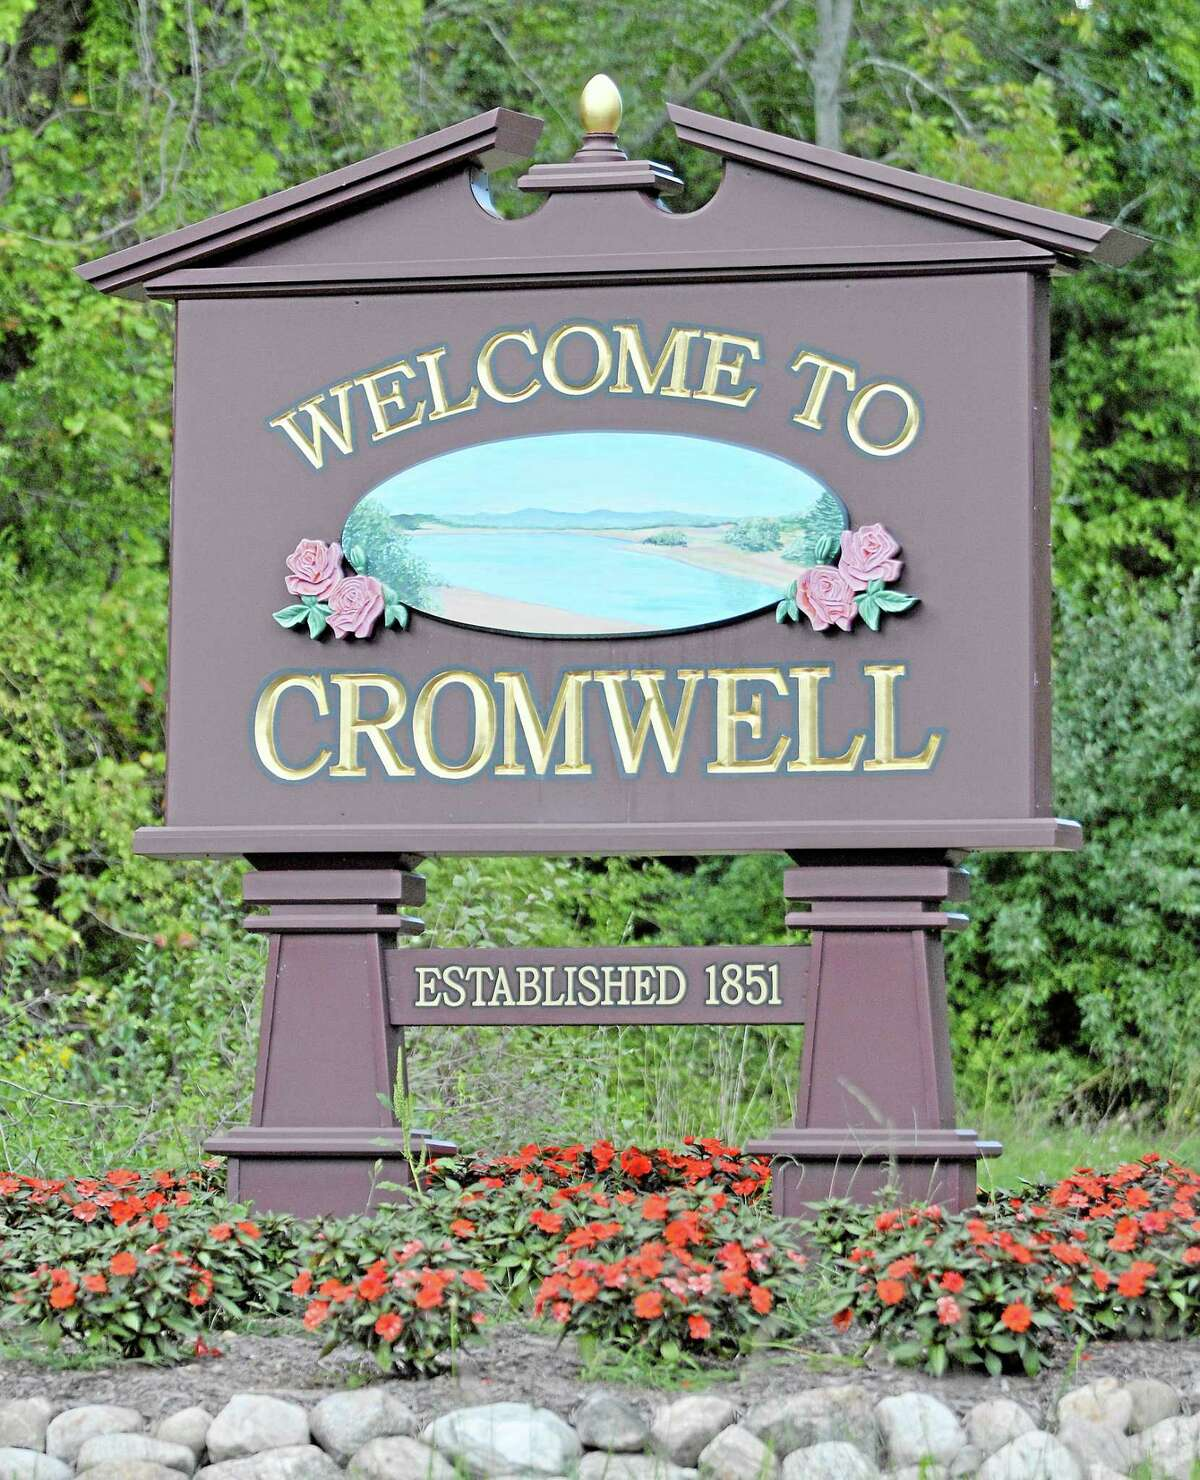 Cromwell Town Sign. Catherine Avalone - The Middletown Press